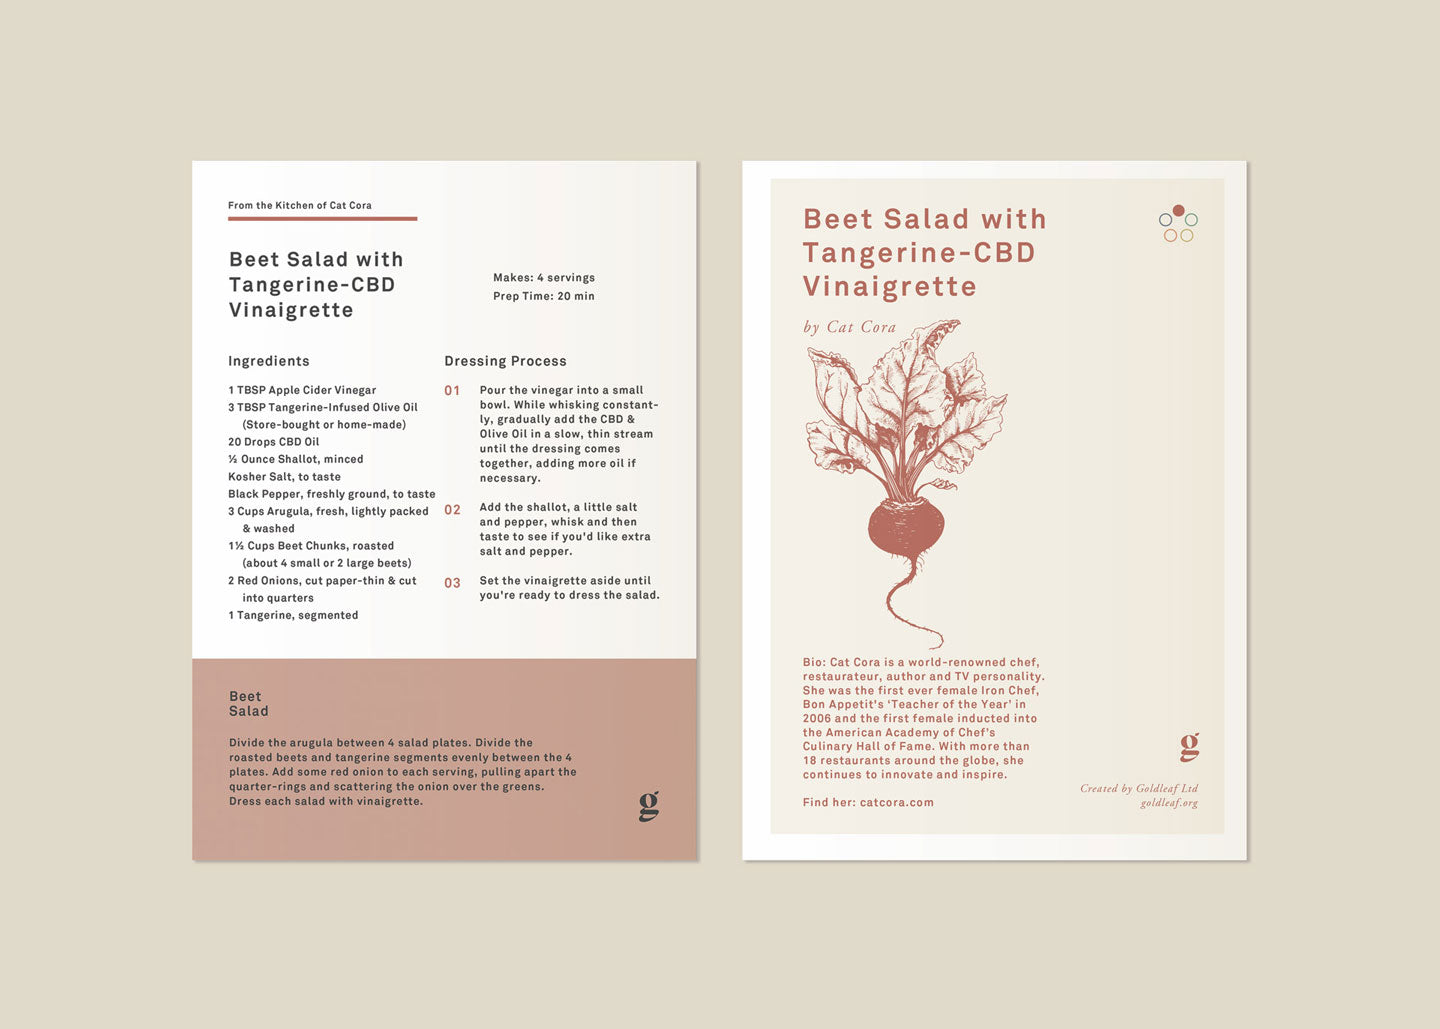 Beet Salad Card Recipe